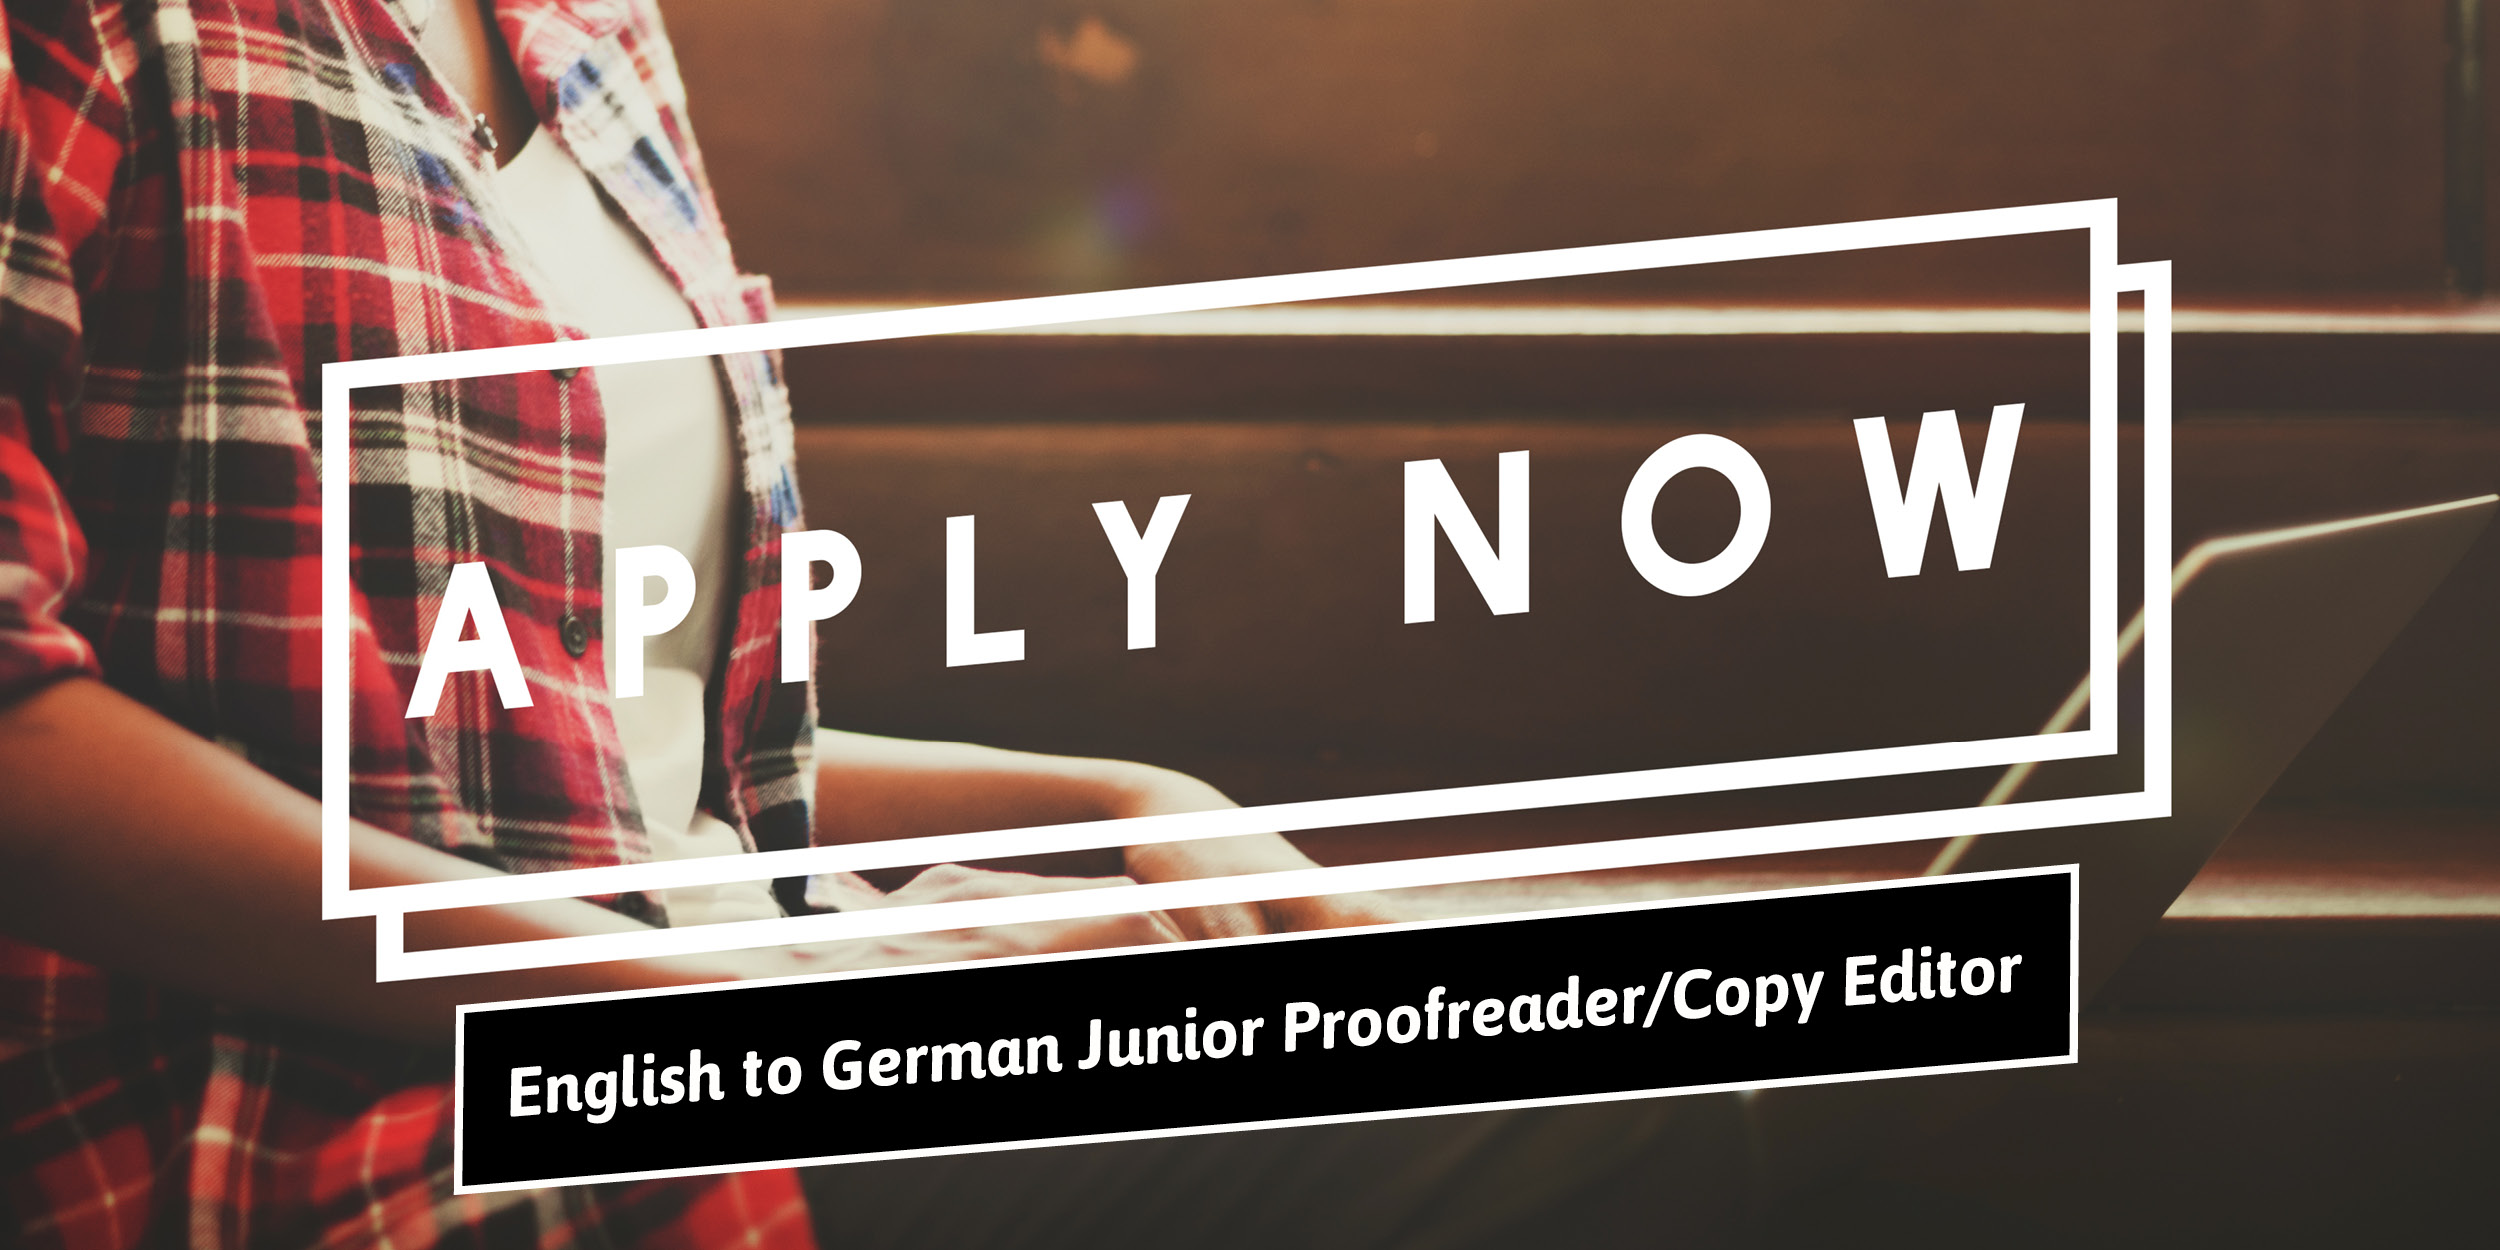 Job Description For English To German Proofreader/copy Editor (in House  Position)